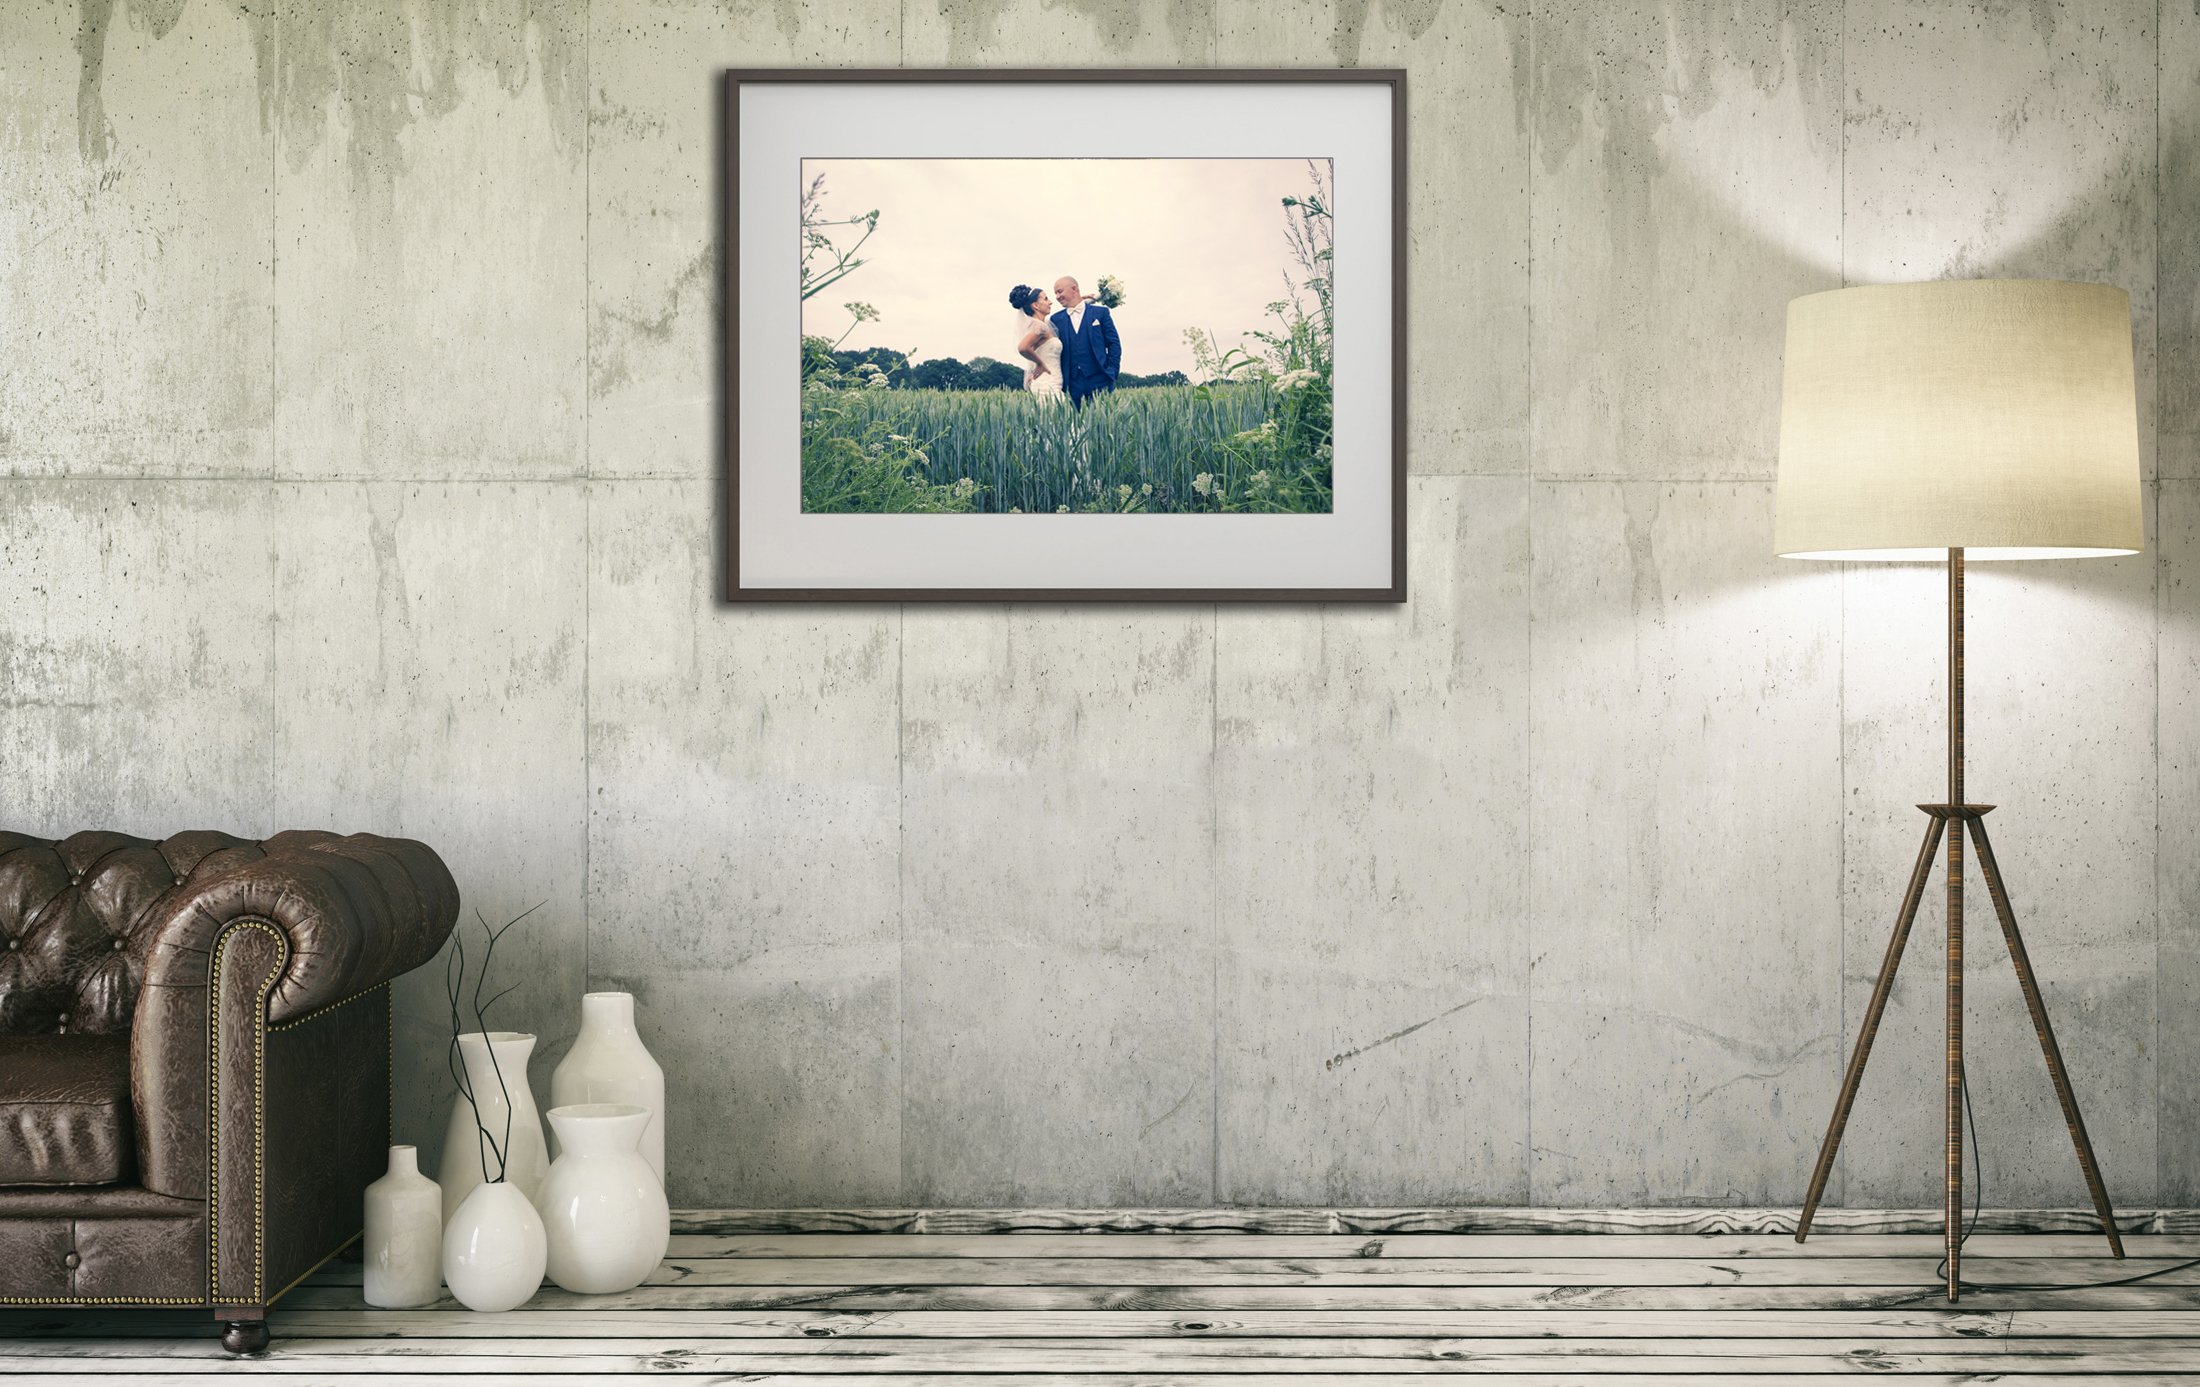 wedding picture hanging on the wall indoors